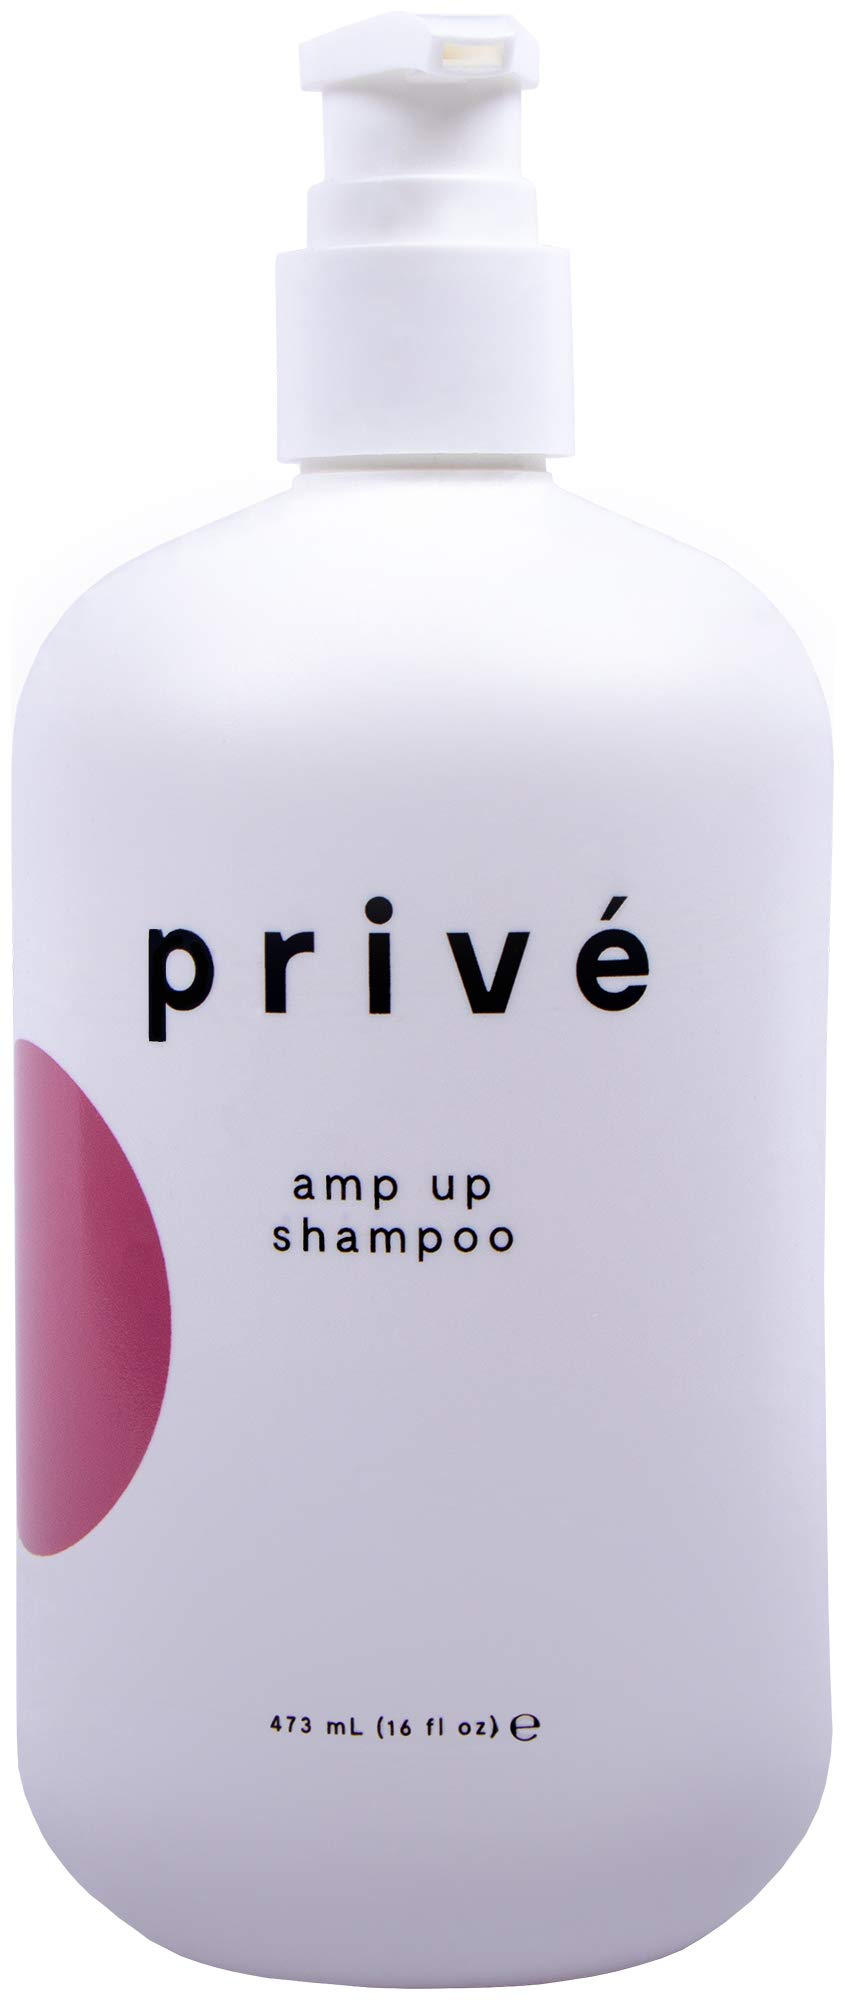 Privé Amp Up Shampoo (16 Fluid Ounce / 473 Milliliter) - Infuse Hair With